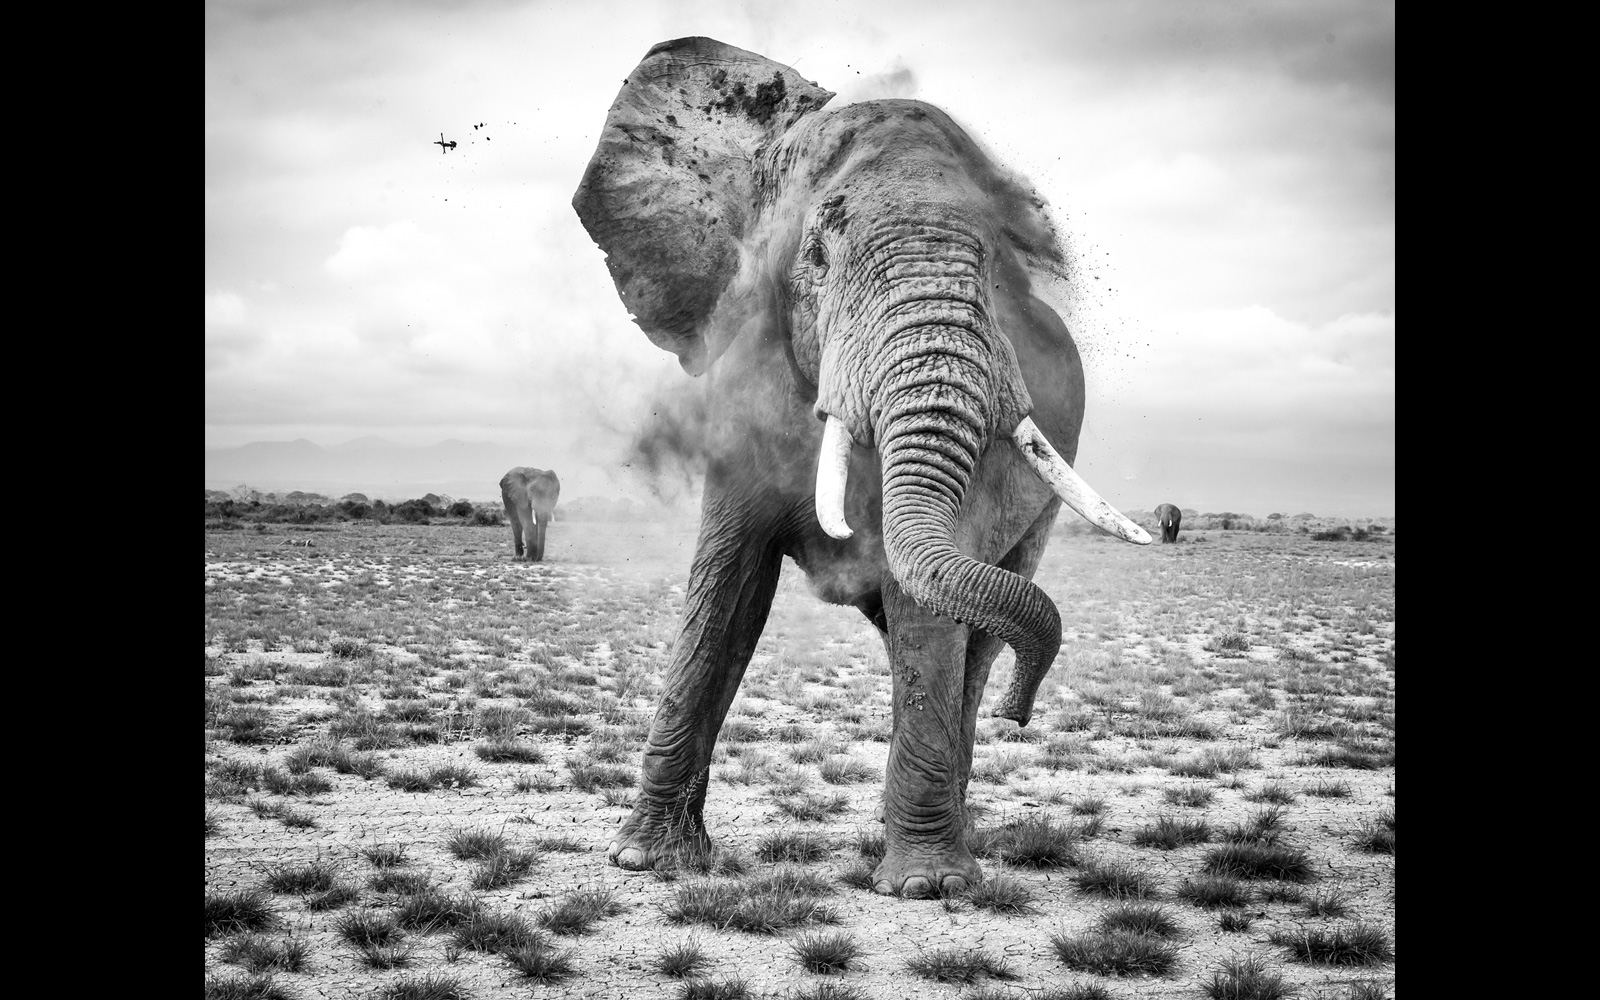 """Unleashed fury"" in Amboseli National Park, Kenya © Dana Kennedy (Photographer of the Year 2018 entrant)"